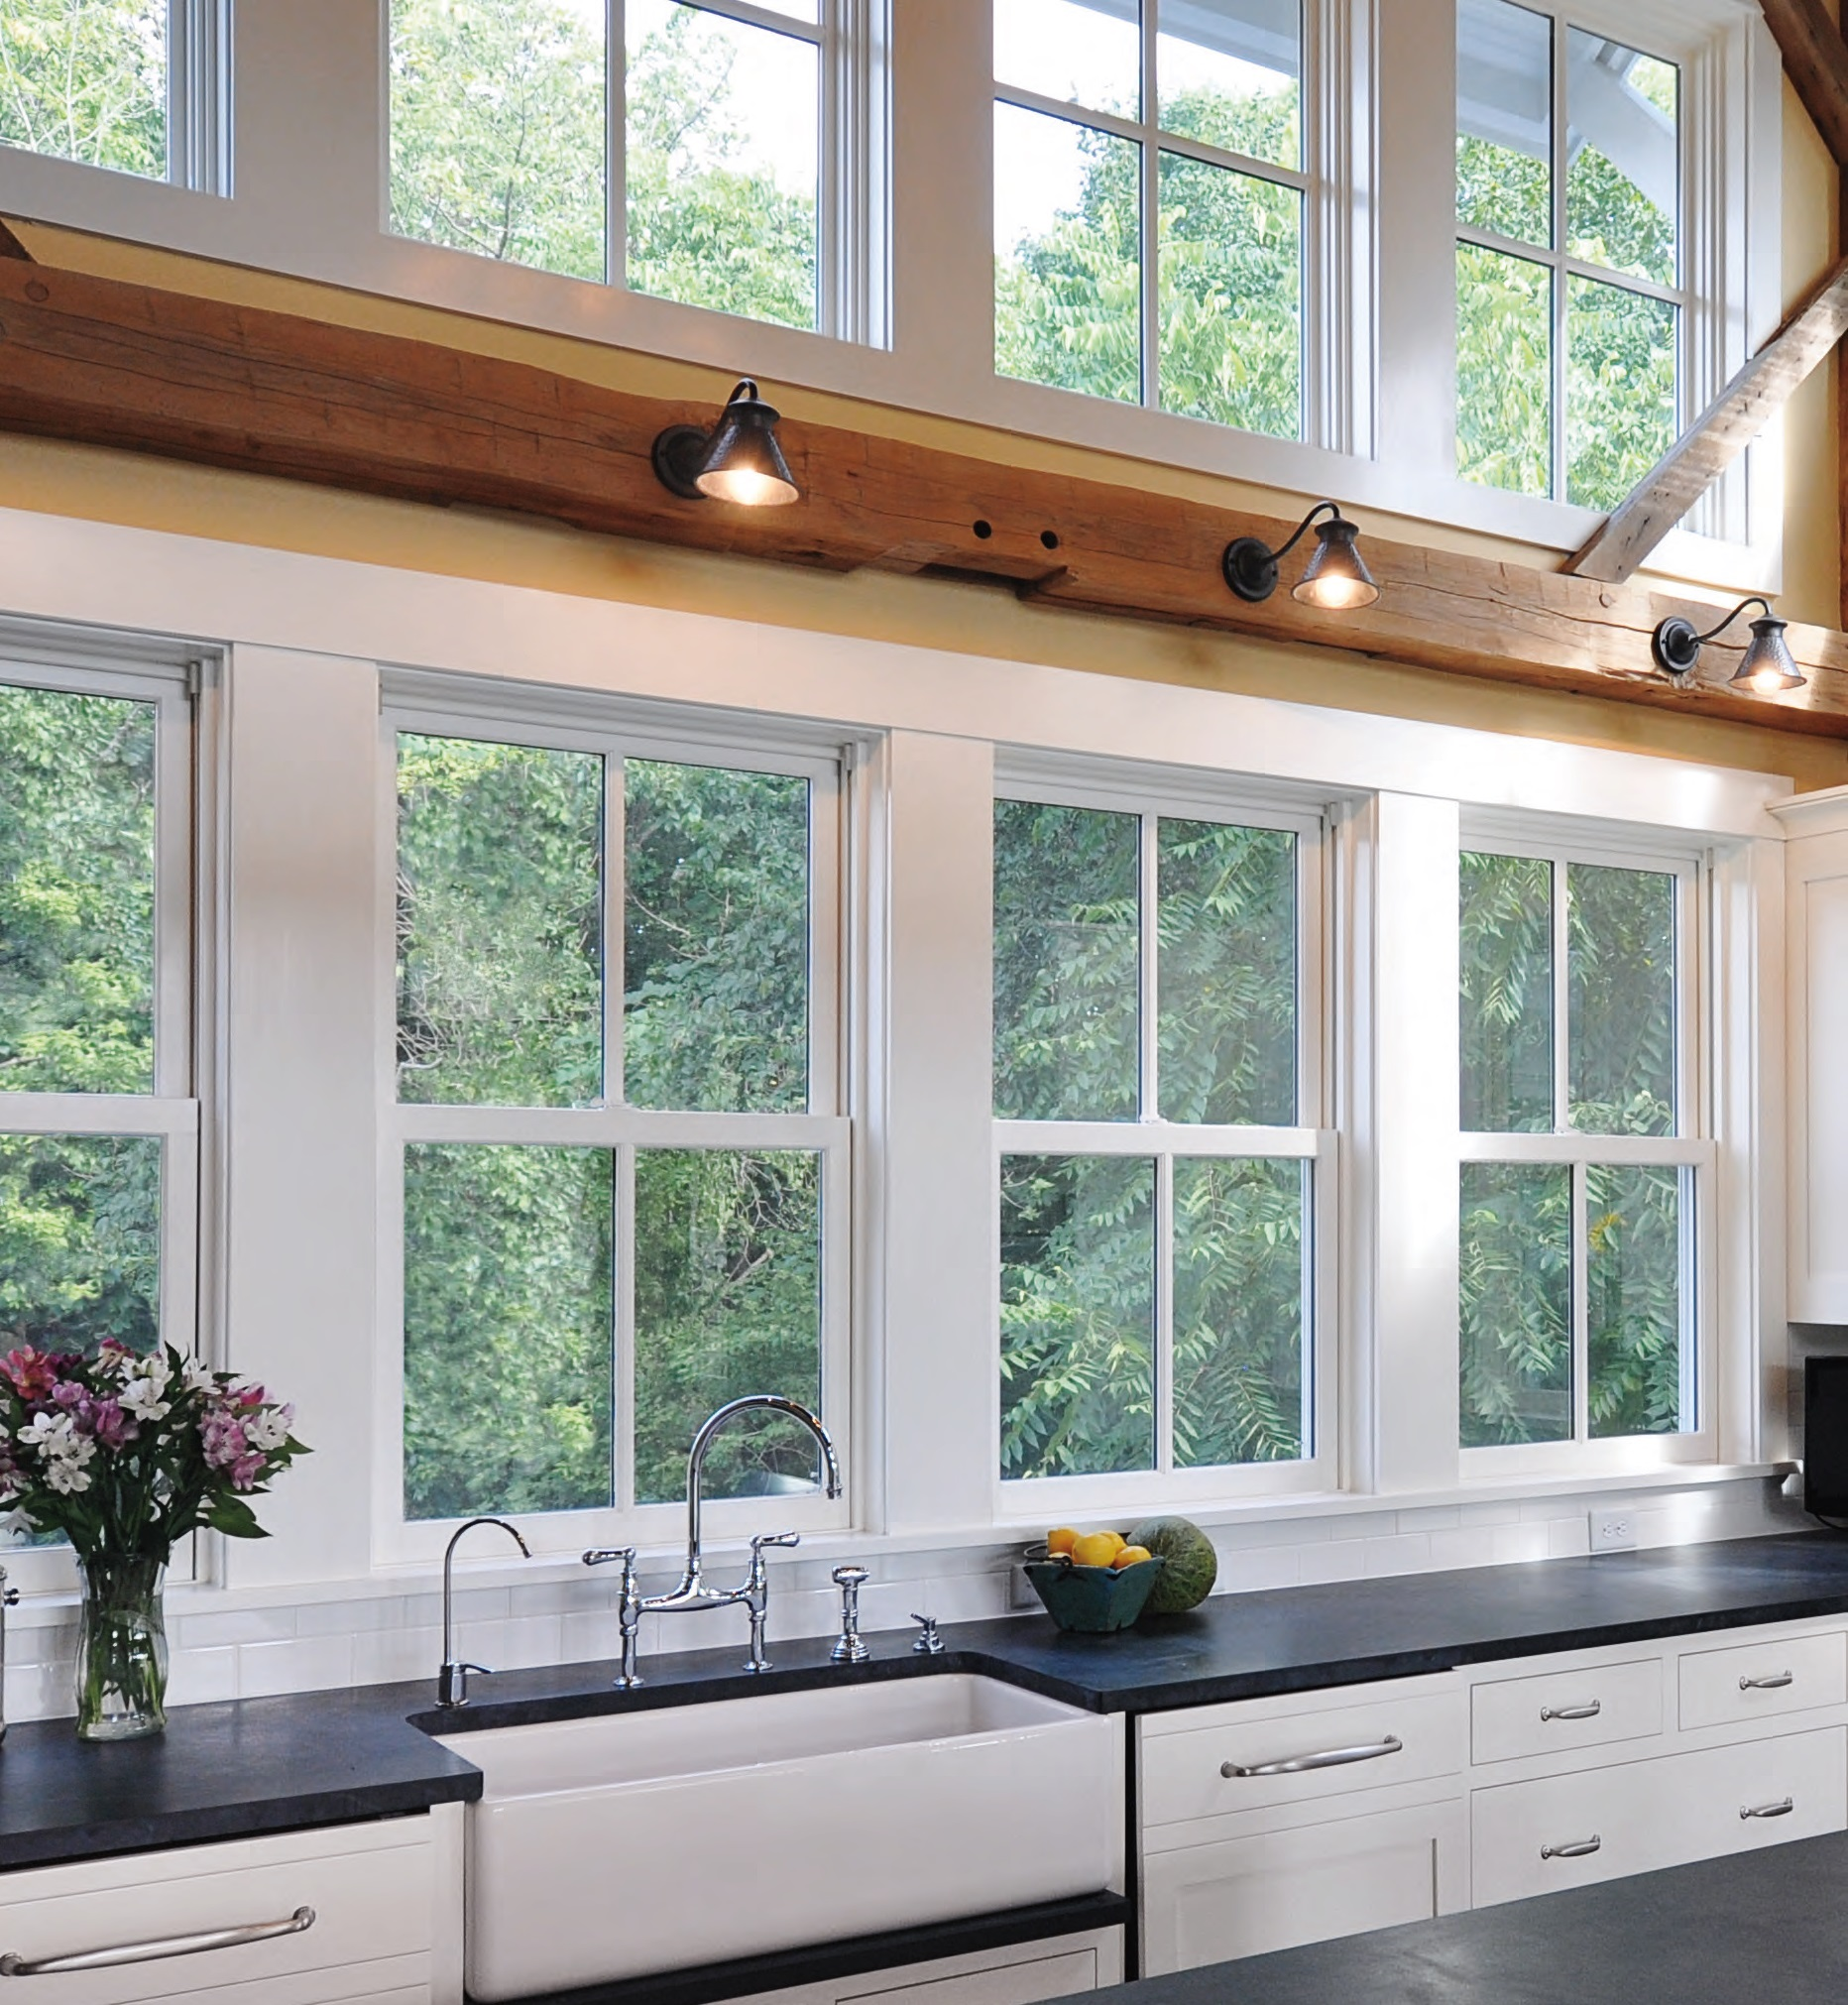 Marvin Signature - WINDOWS AND DOORS TO ELEVATE YOUR EVERY DAY.